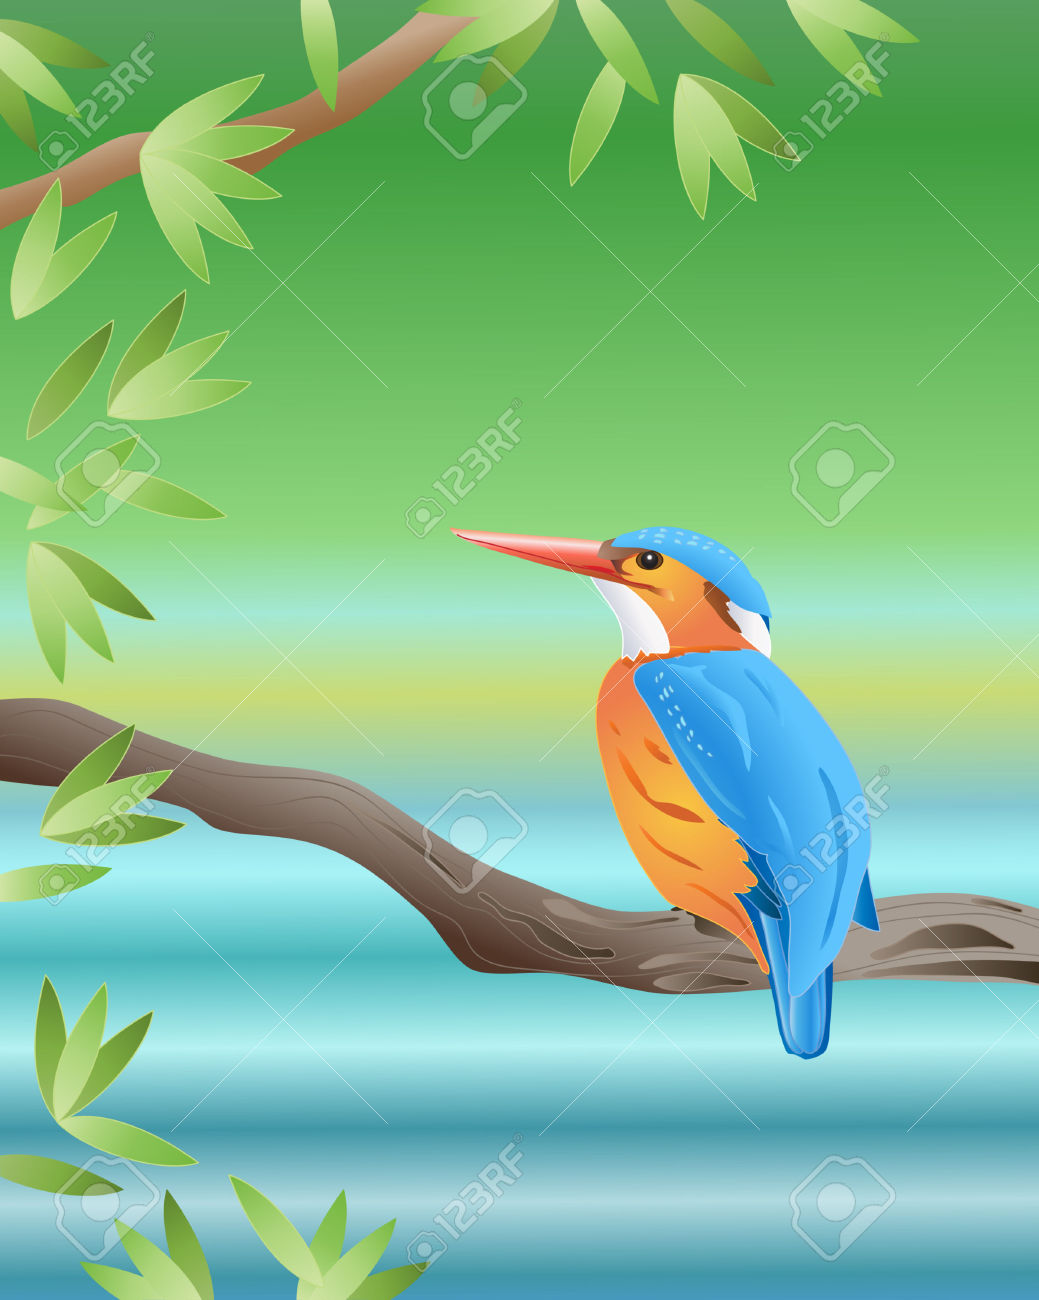 An Illustration Of A Malachite Kingfisher Sitting On A Branch.